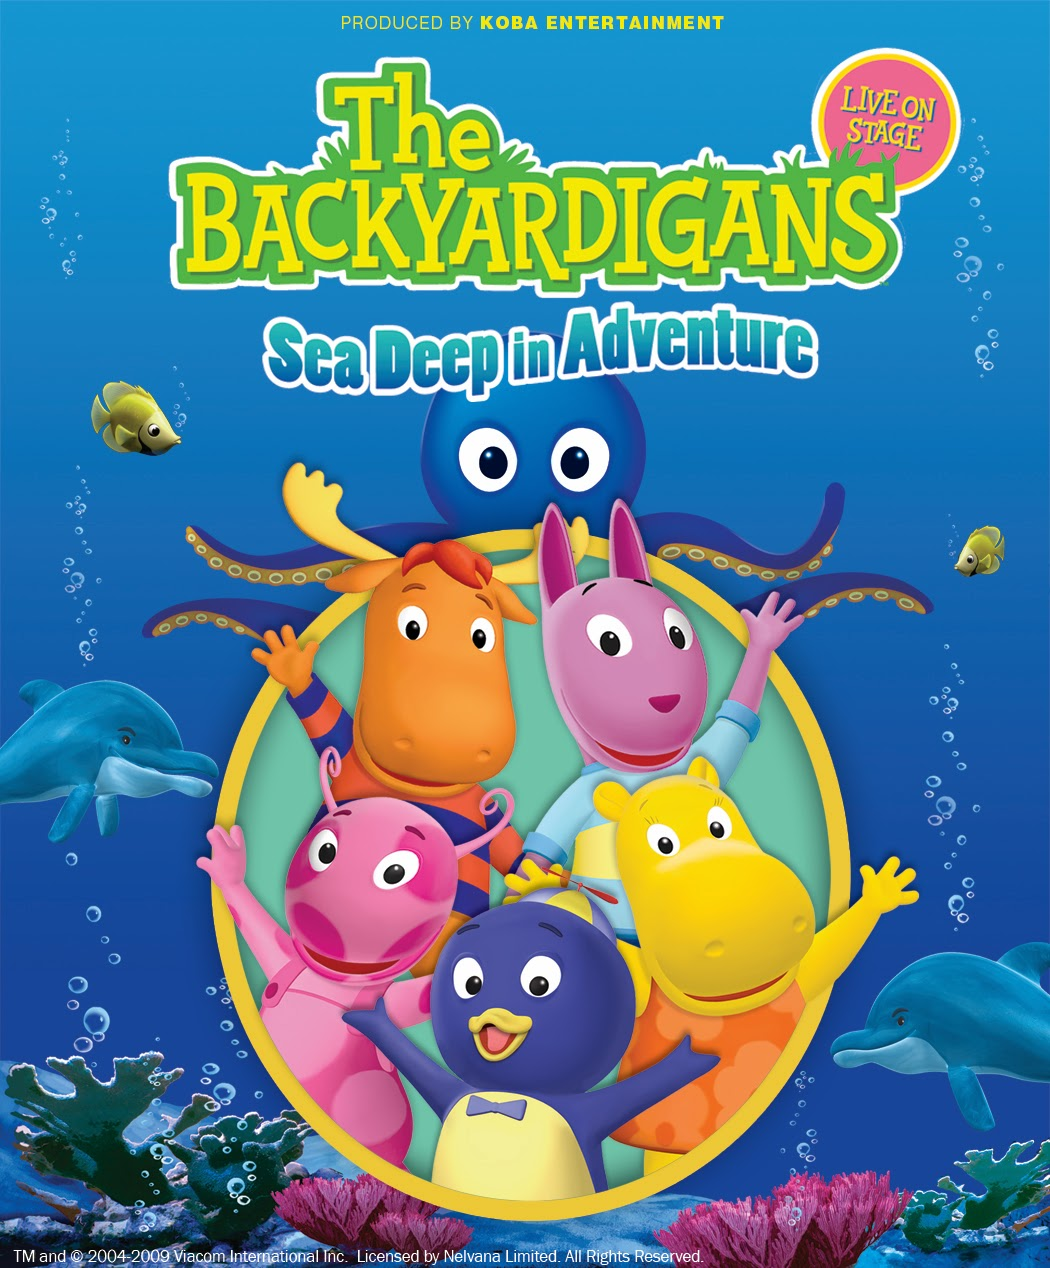 Win Tickets To See The Backyardigans Live!